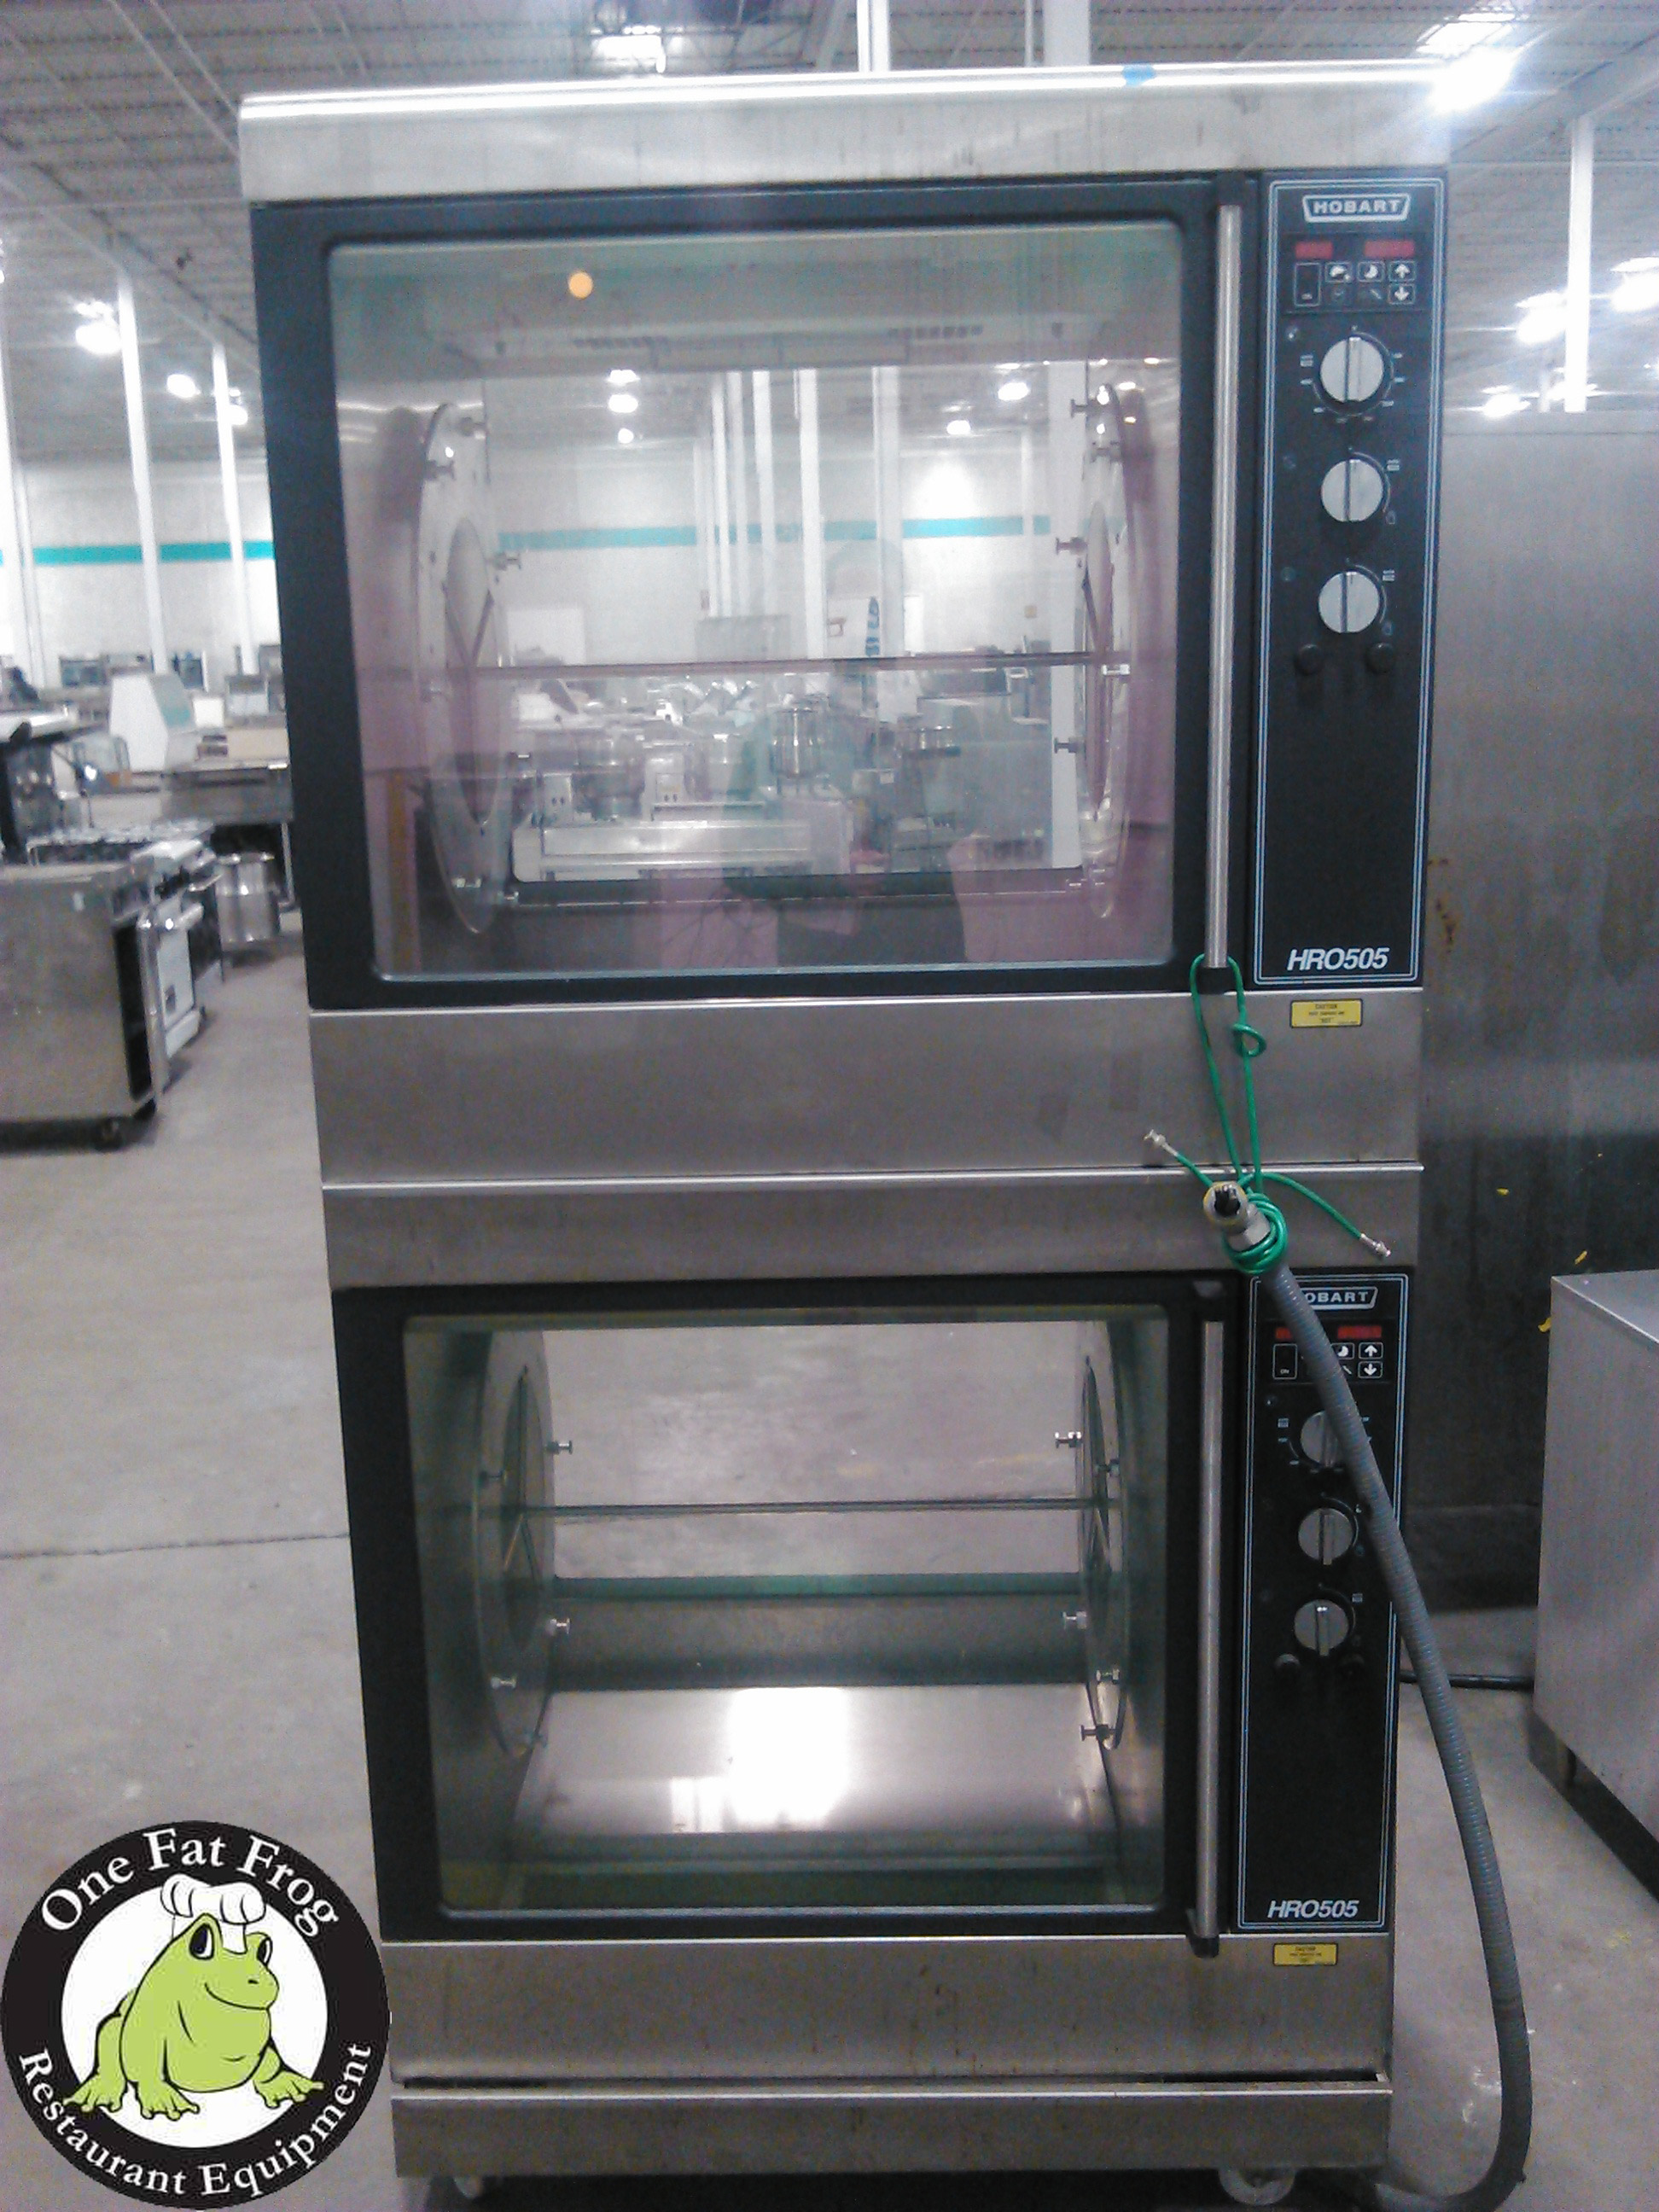 Hobart Countertop Oven : this hobart rotisserie is a small countertop electric oven the picture ...